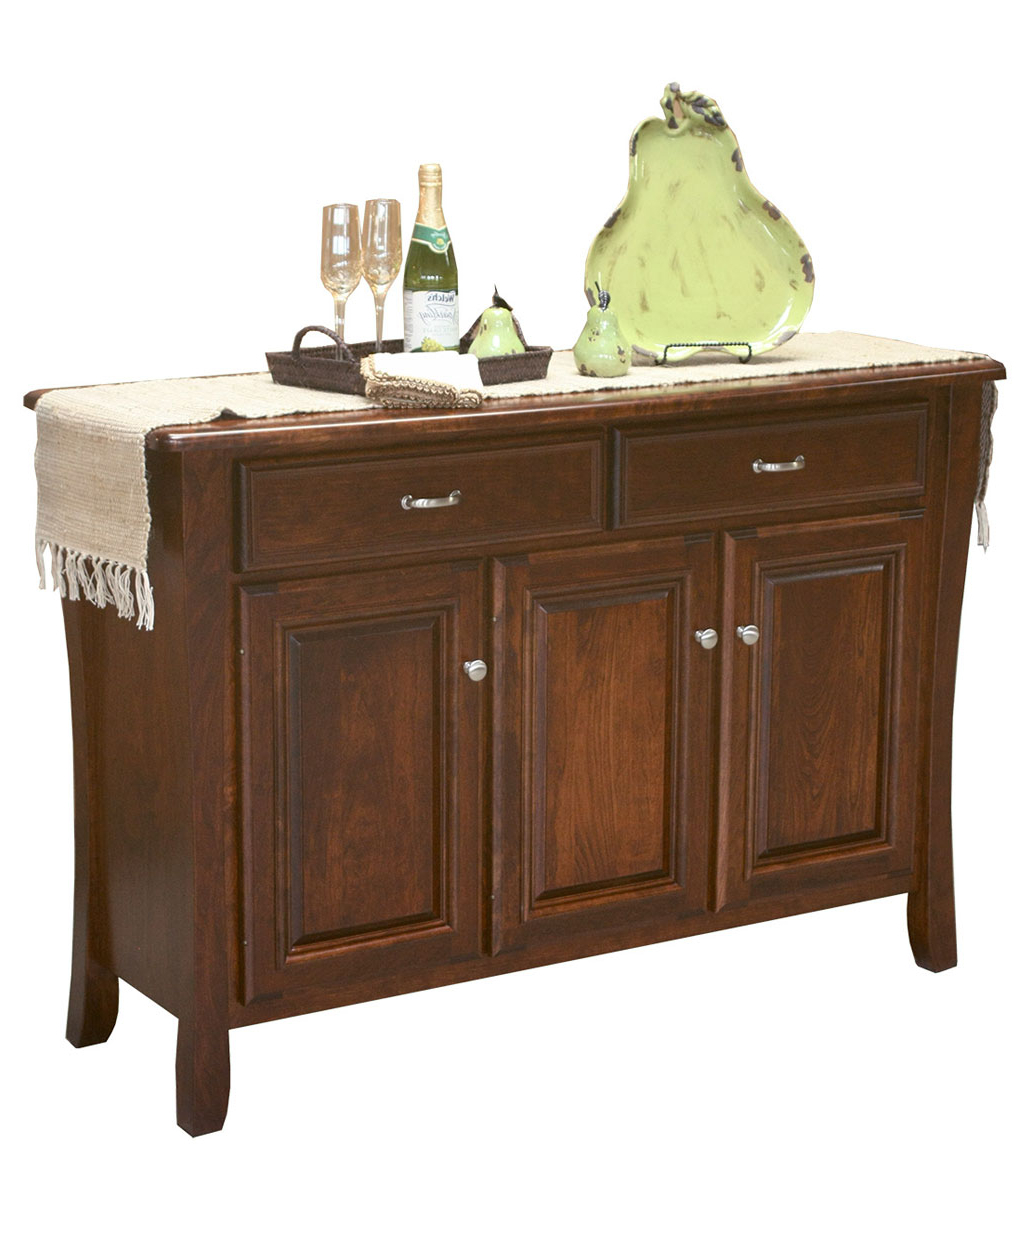 Berkley Buffet Within 2 Shelf Buffets With Curved Legs (View 3 of 20)